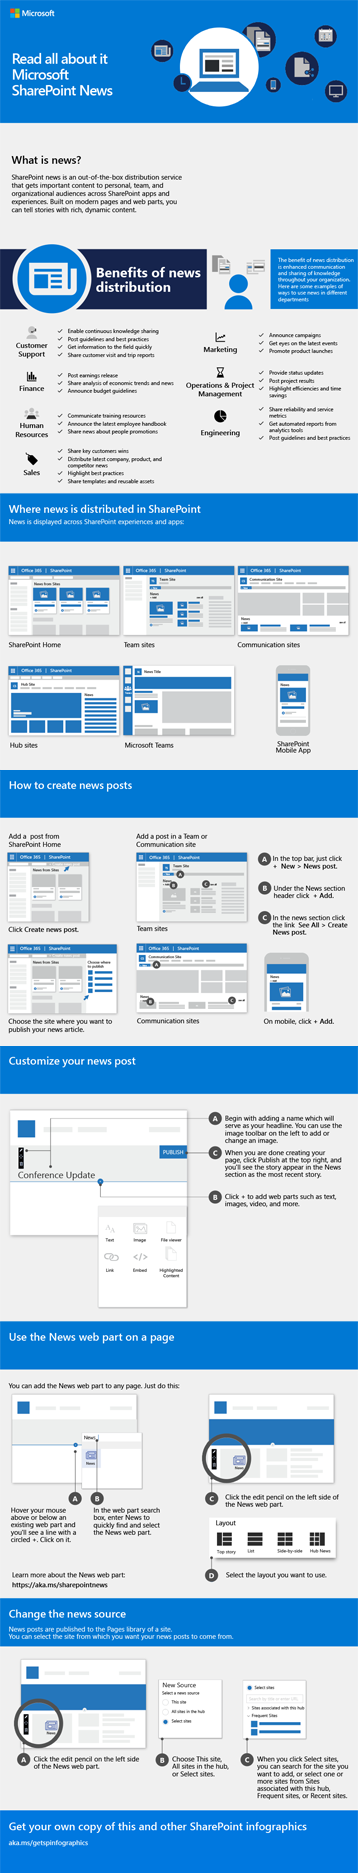 SharePoint-nieuws Infographic